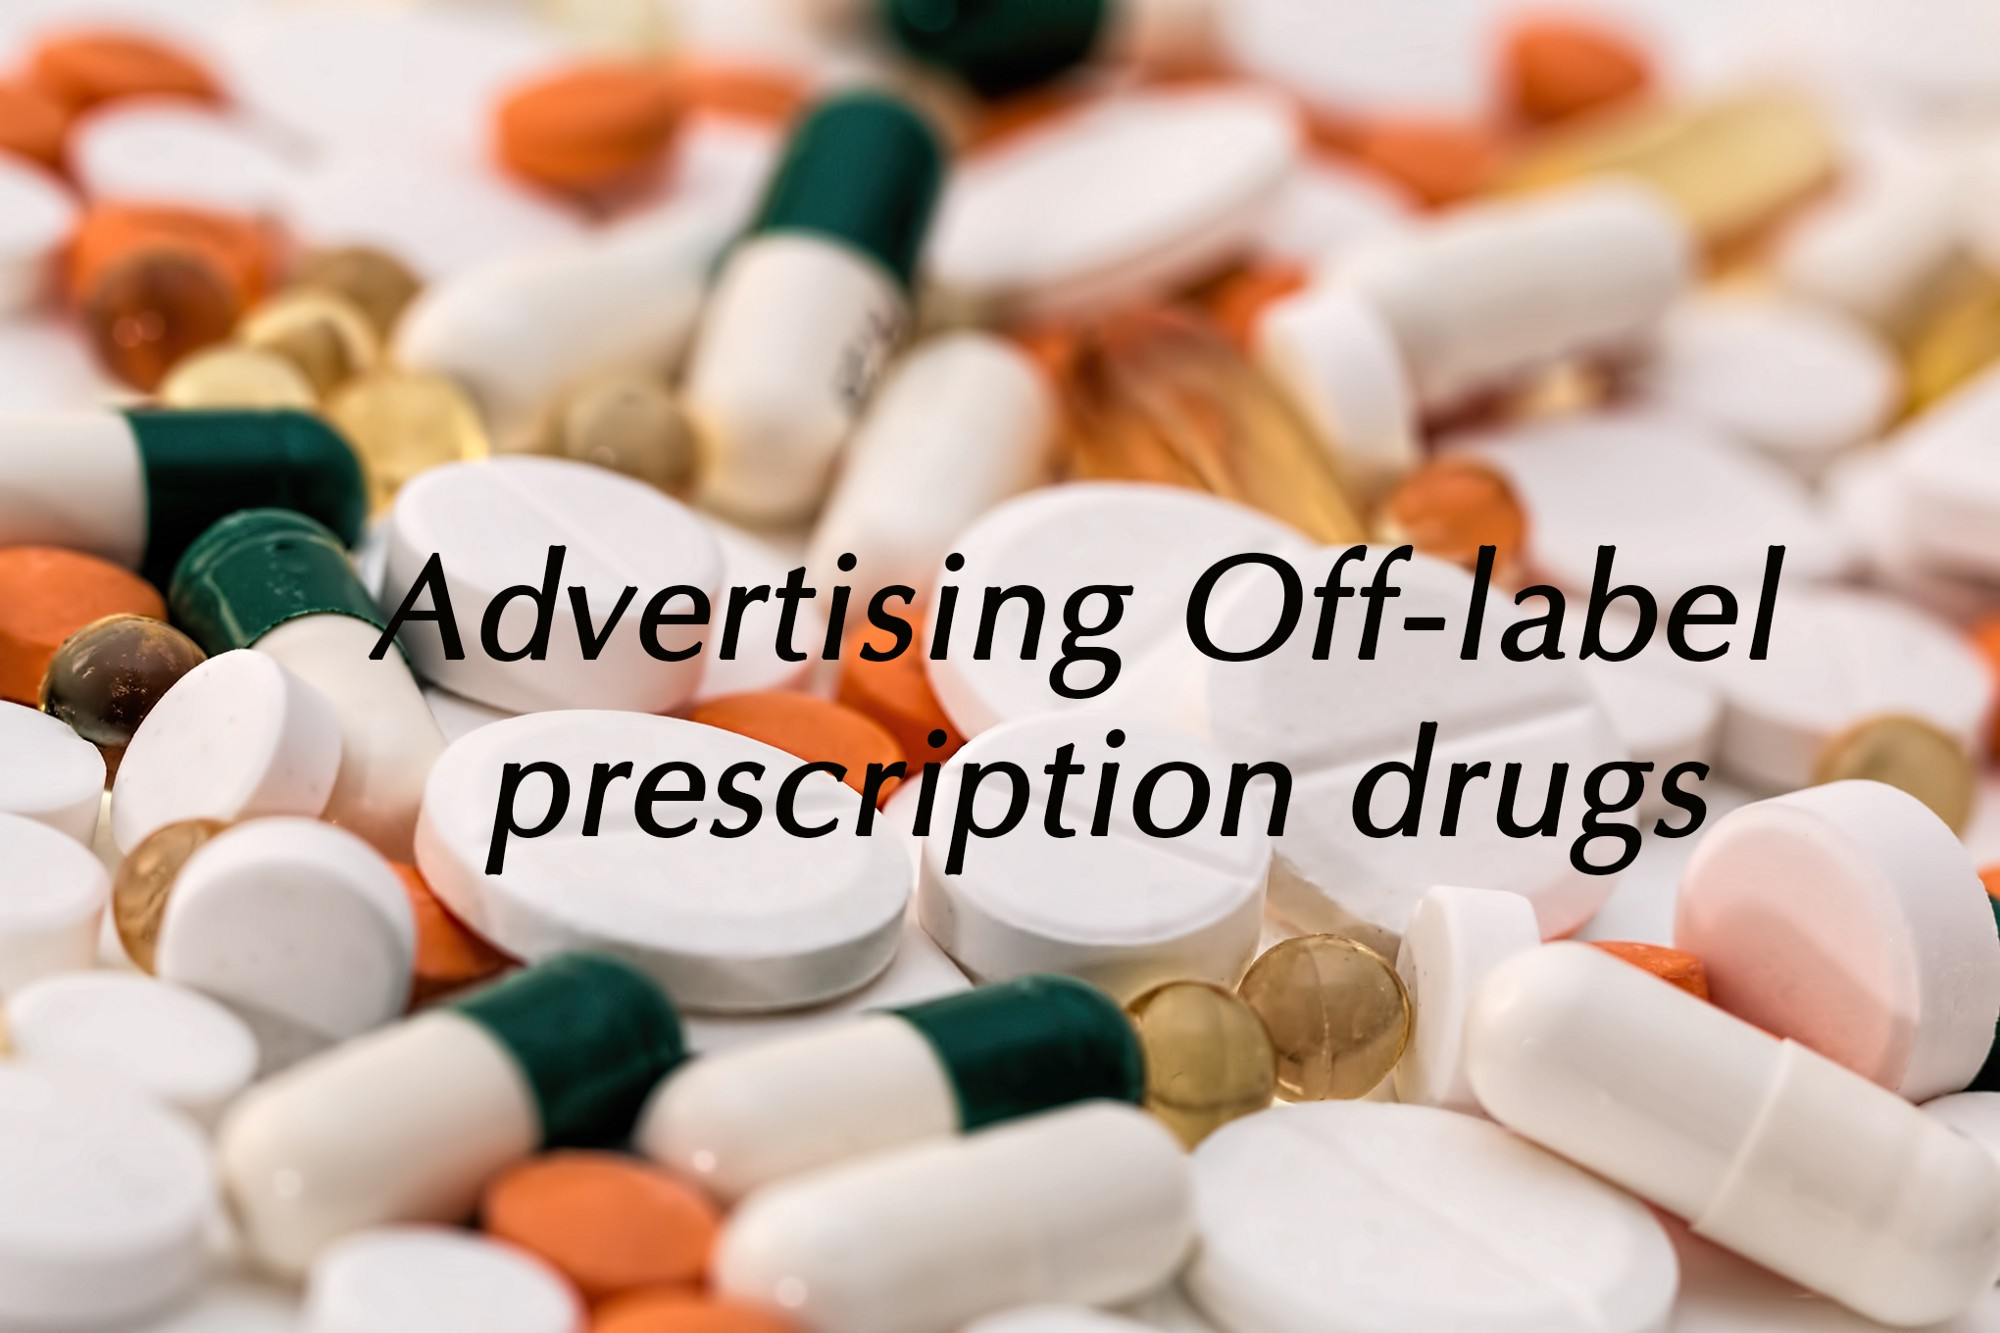 FDA Tightens Painkiller Regulations While Approving Drug Ripe for Abuse FDA Tightens Painkiller Regulations While Approving Drug Ripe for Abuse new picture